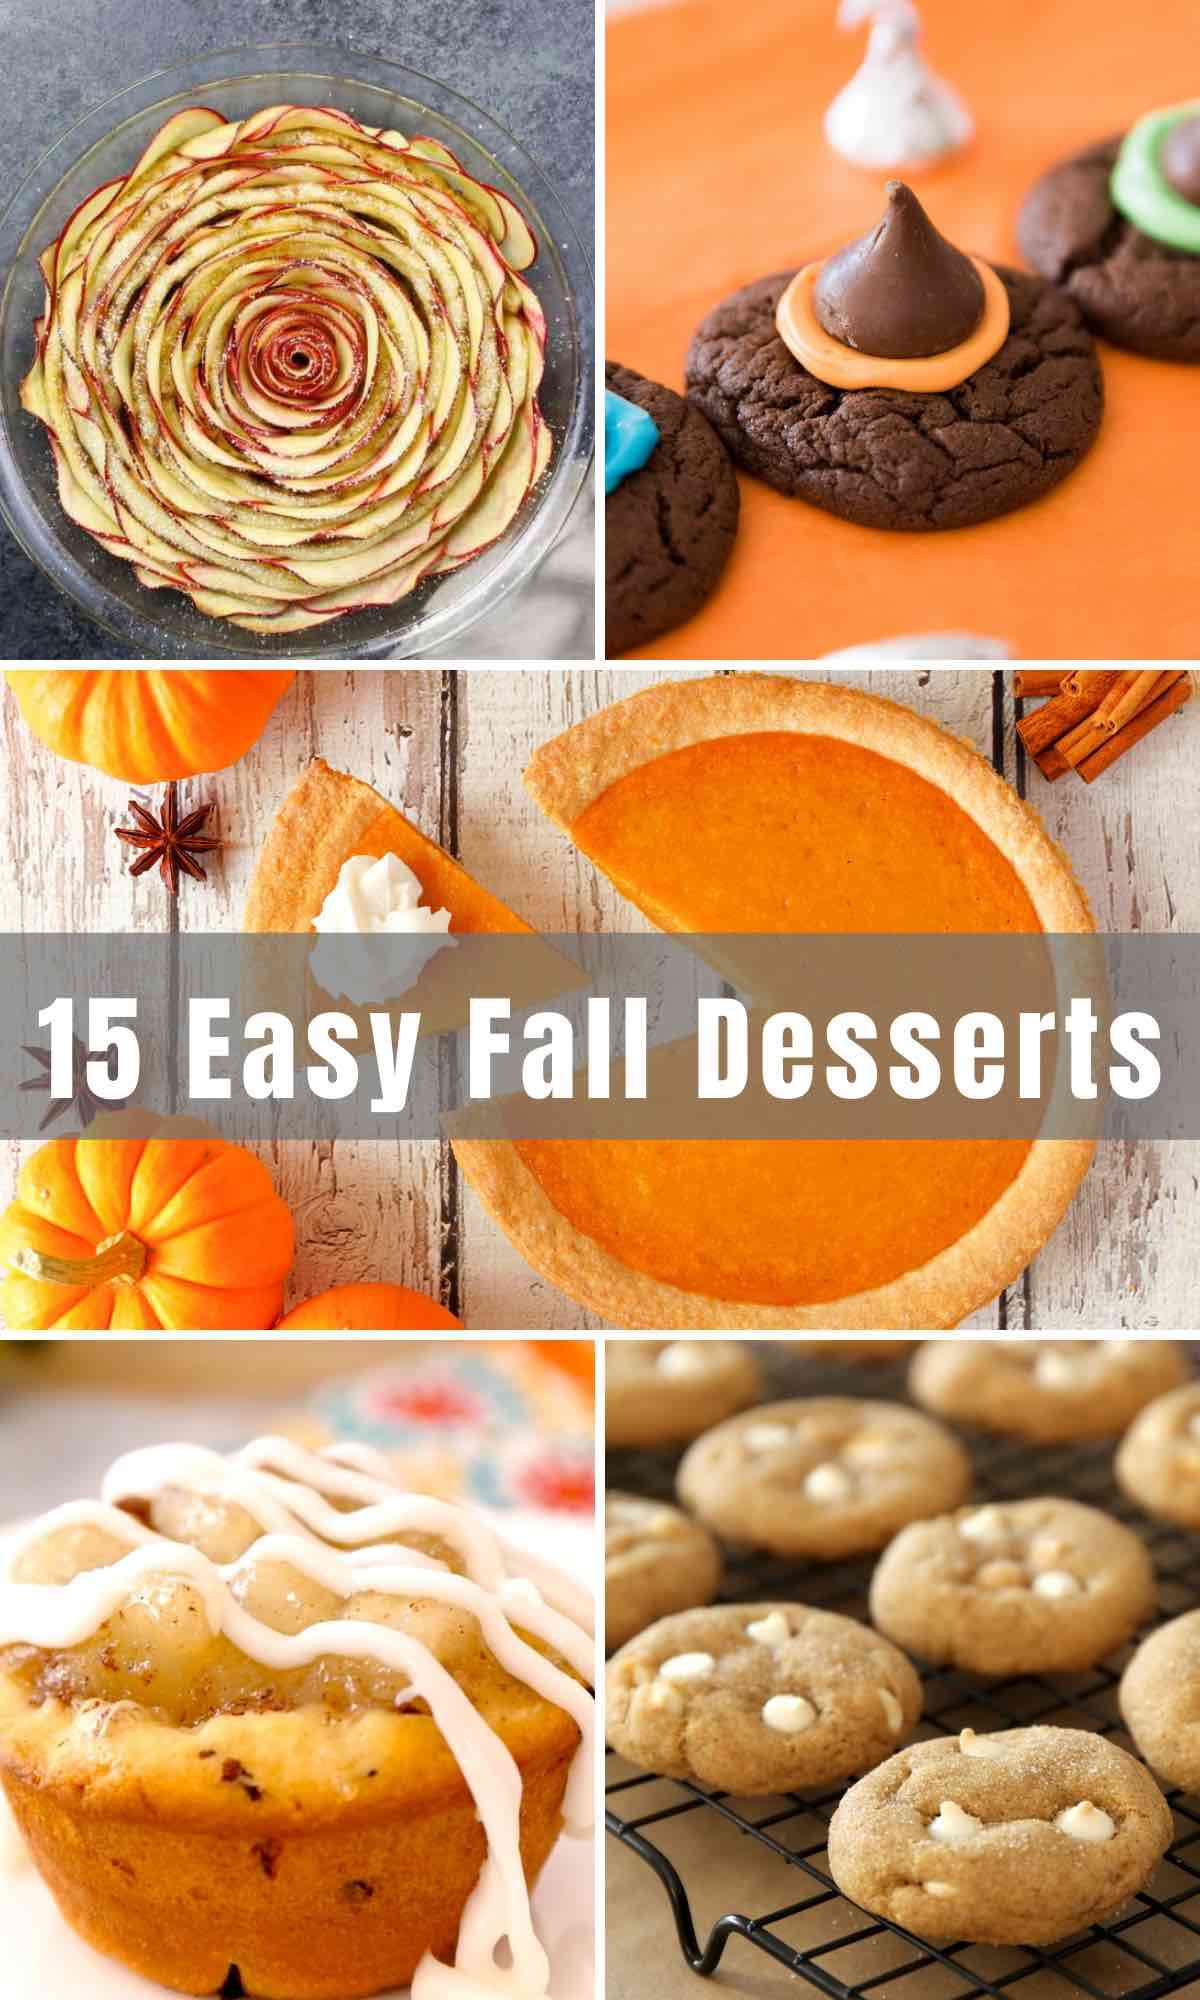 Desserts are the perfect after-dinner treats that hit the spot once the weather starts getting colder and the leaves start falling. We'll take you through 15 of the Best Fall Dessert Recipes.From pumpkin pie to cinnamon roll tart, to Thanksgiving trifles and apple tacos, get baking and enjoy these cozy autumn desserts!